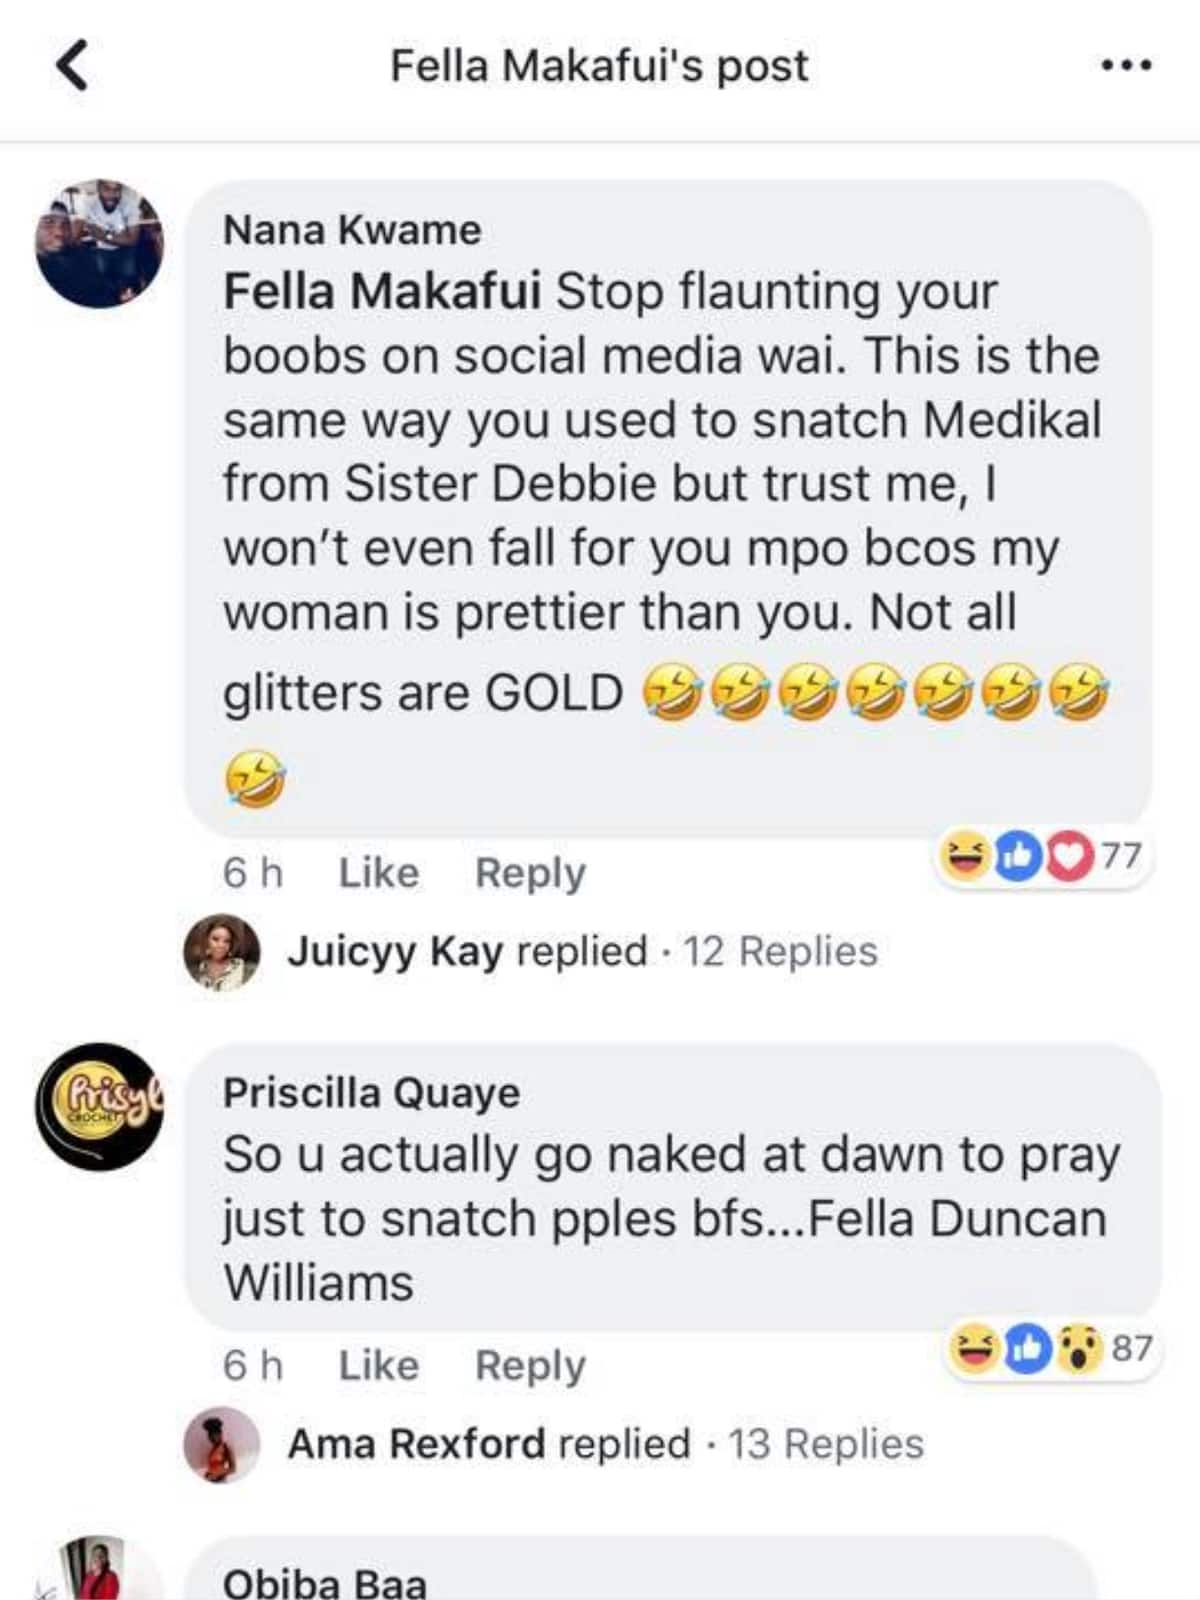 Social Media users descend heavily on Fella Makafui for snatching Medikal from Sister Derby